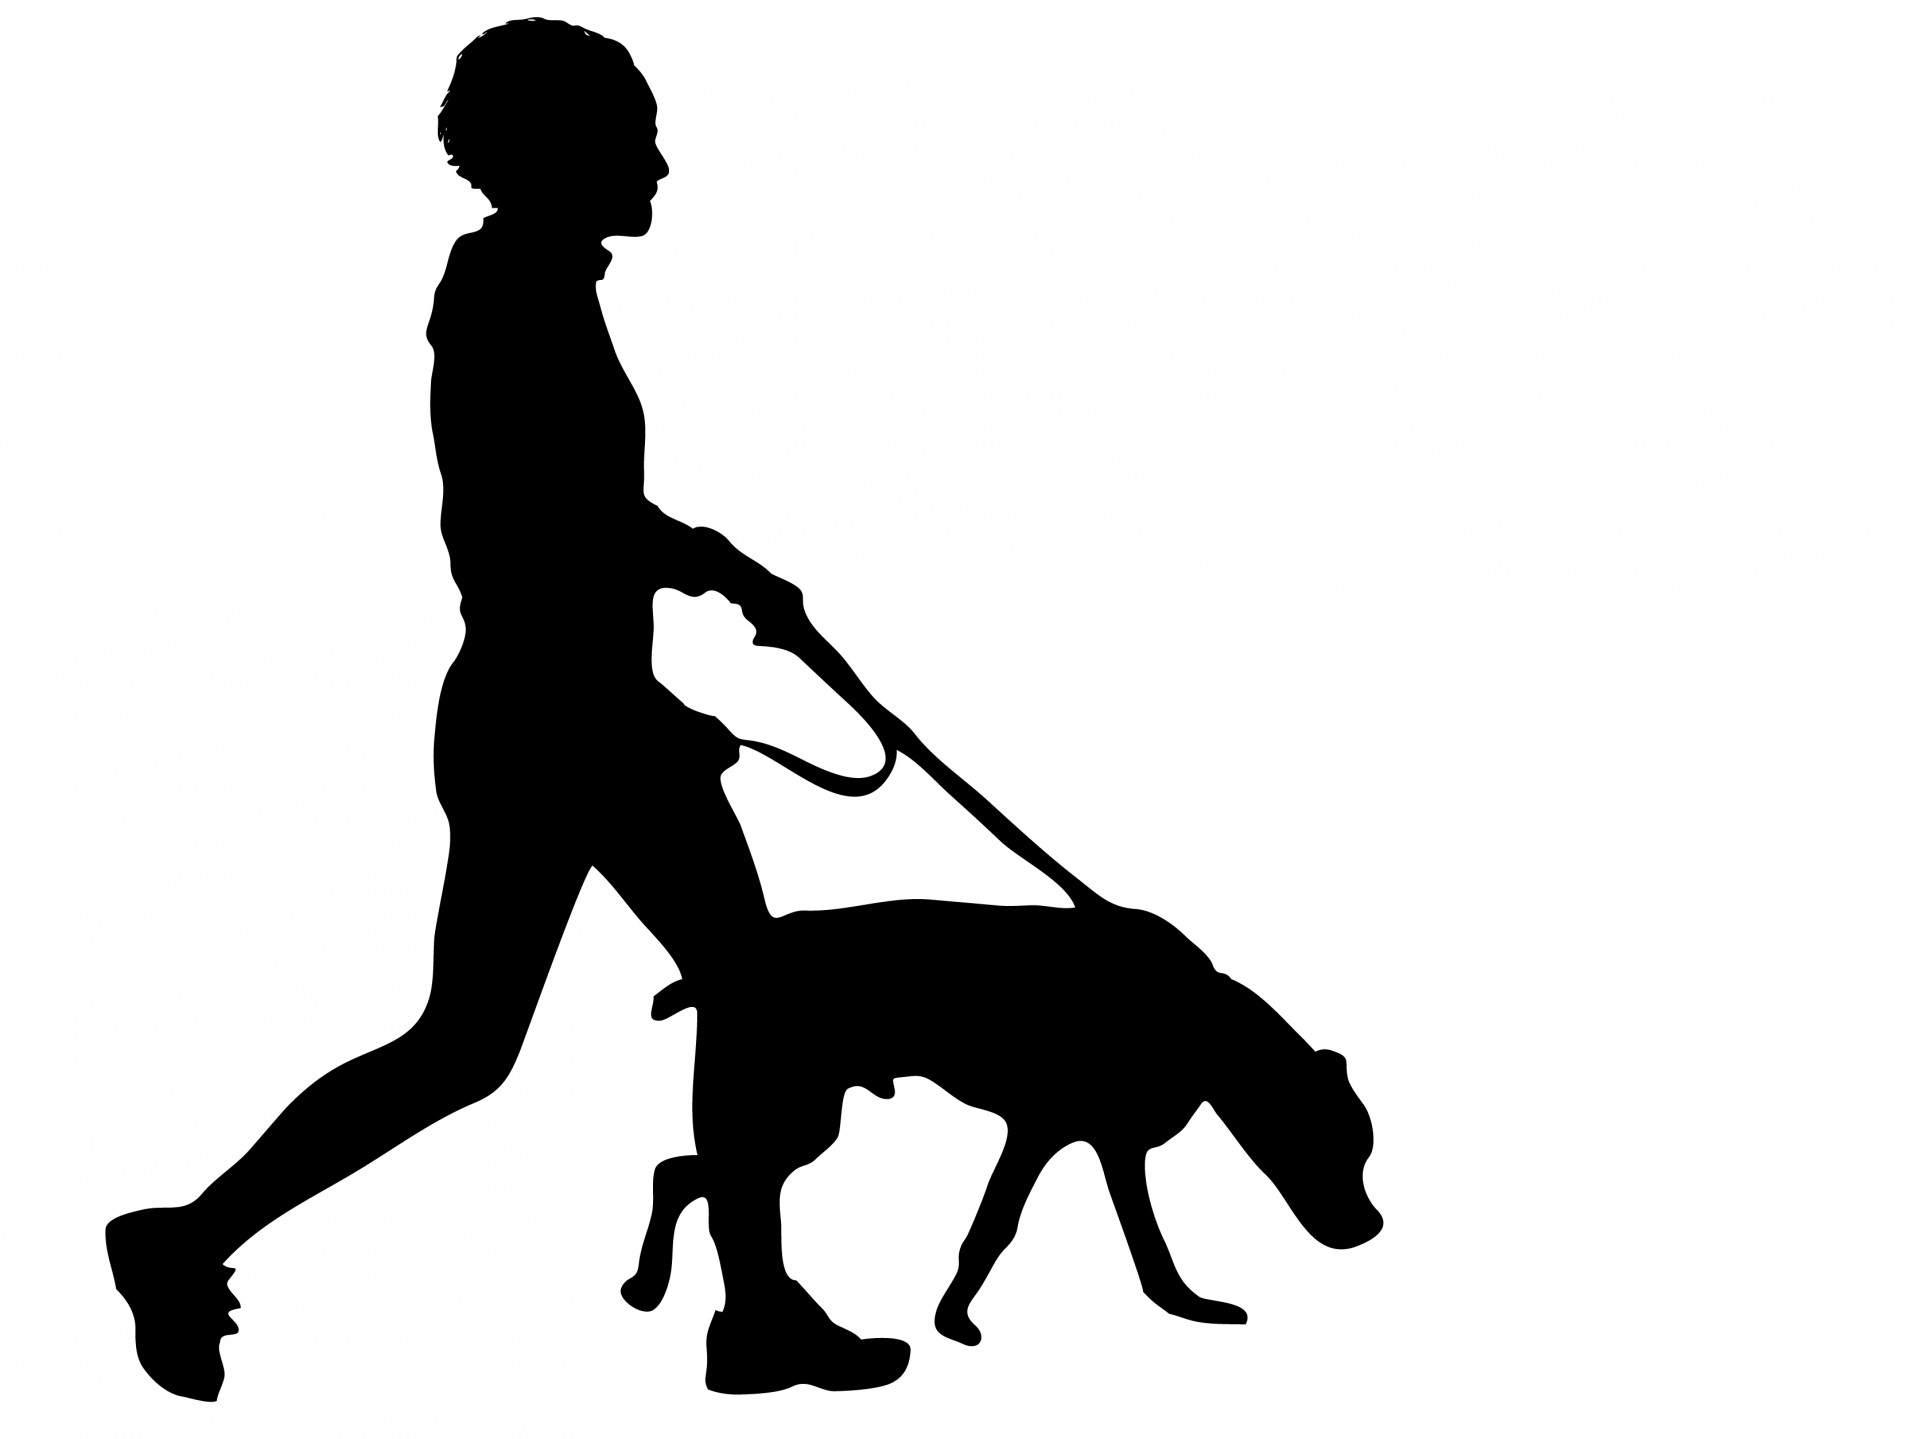 No dog walk clipart.